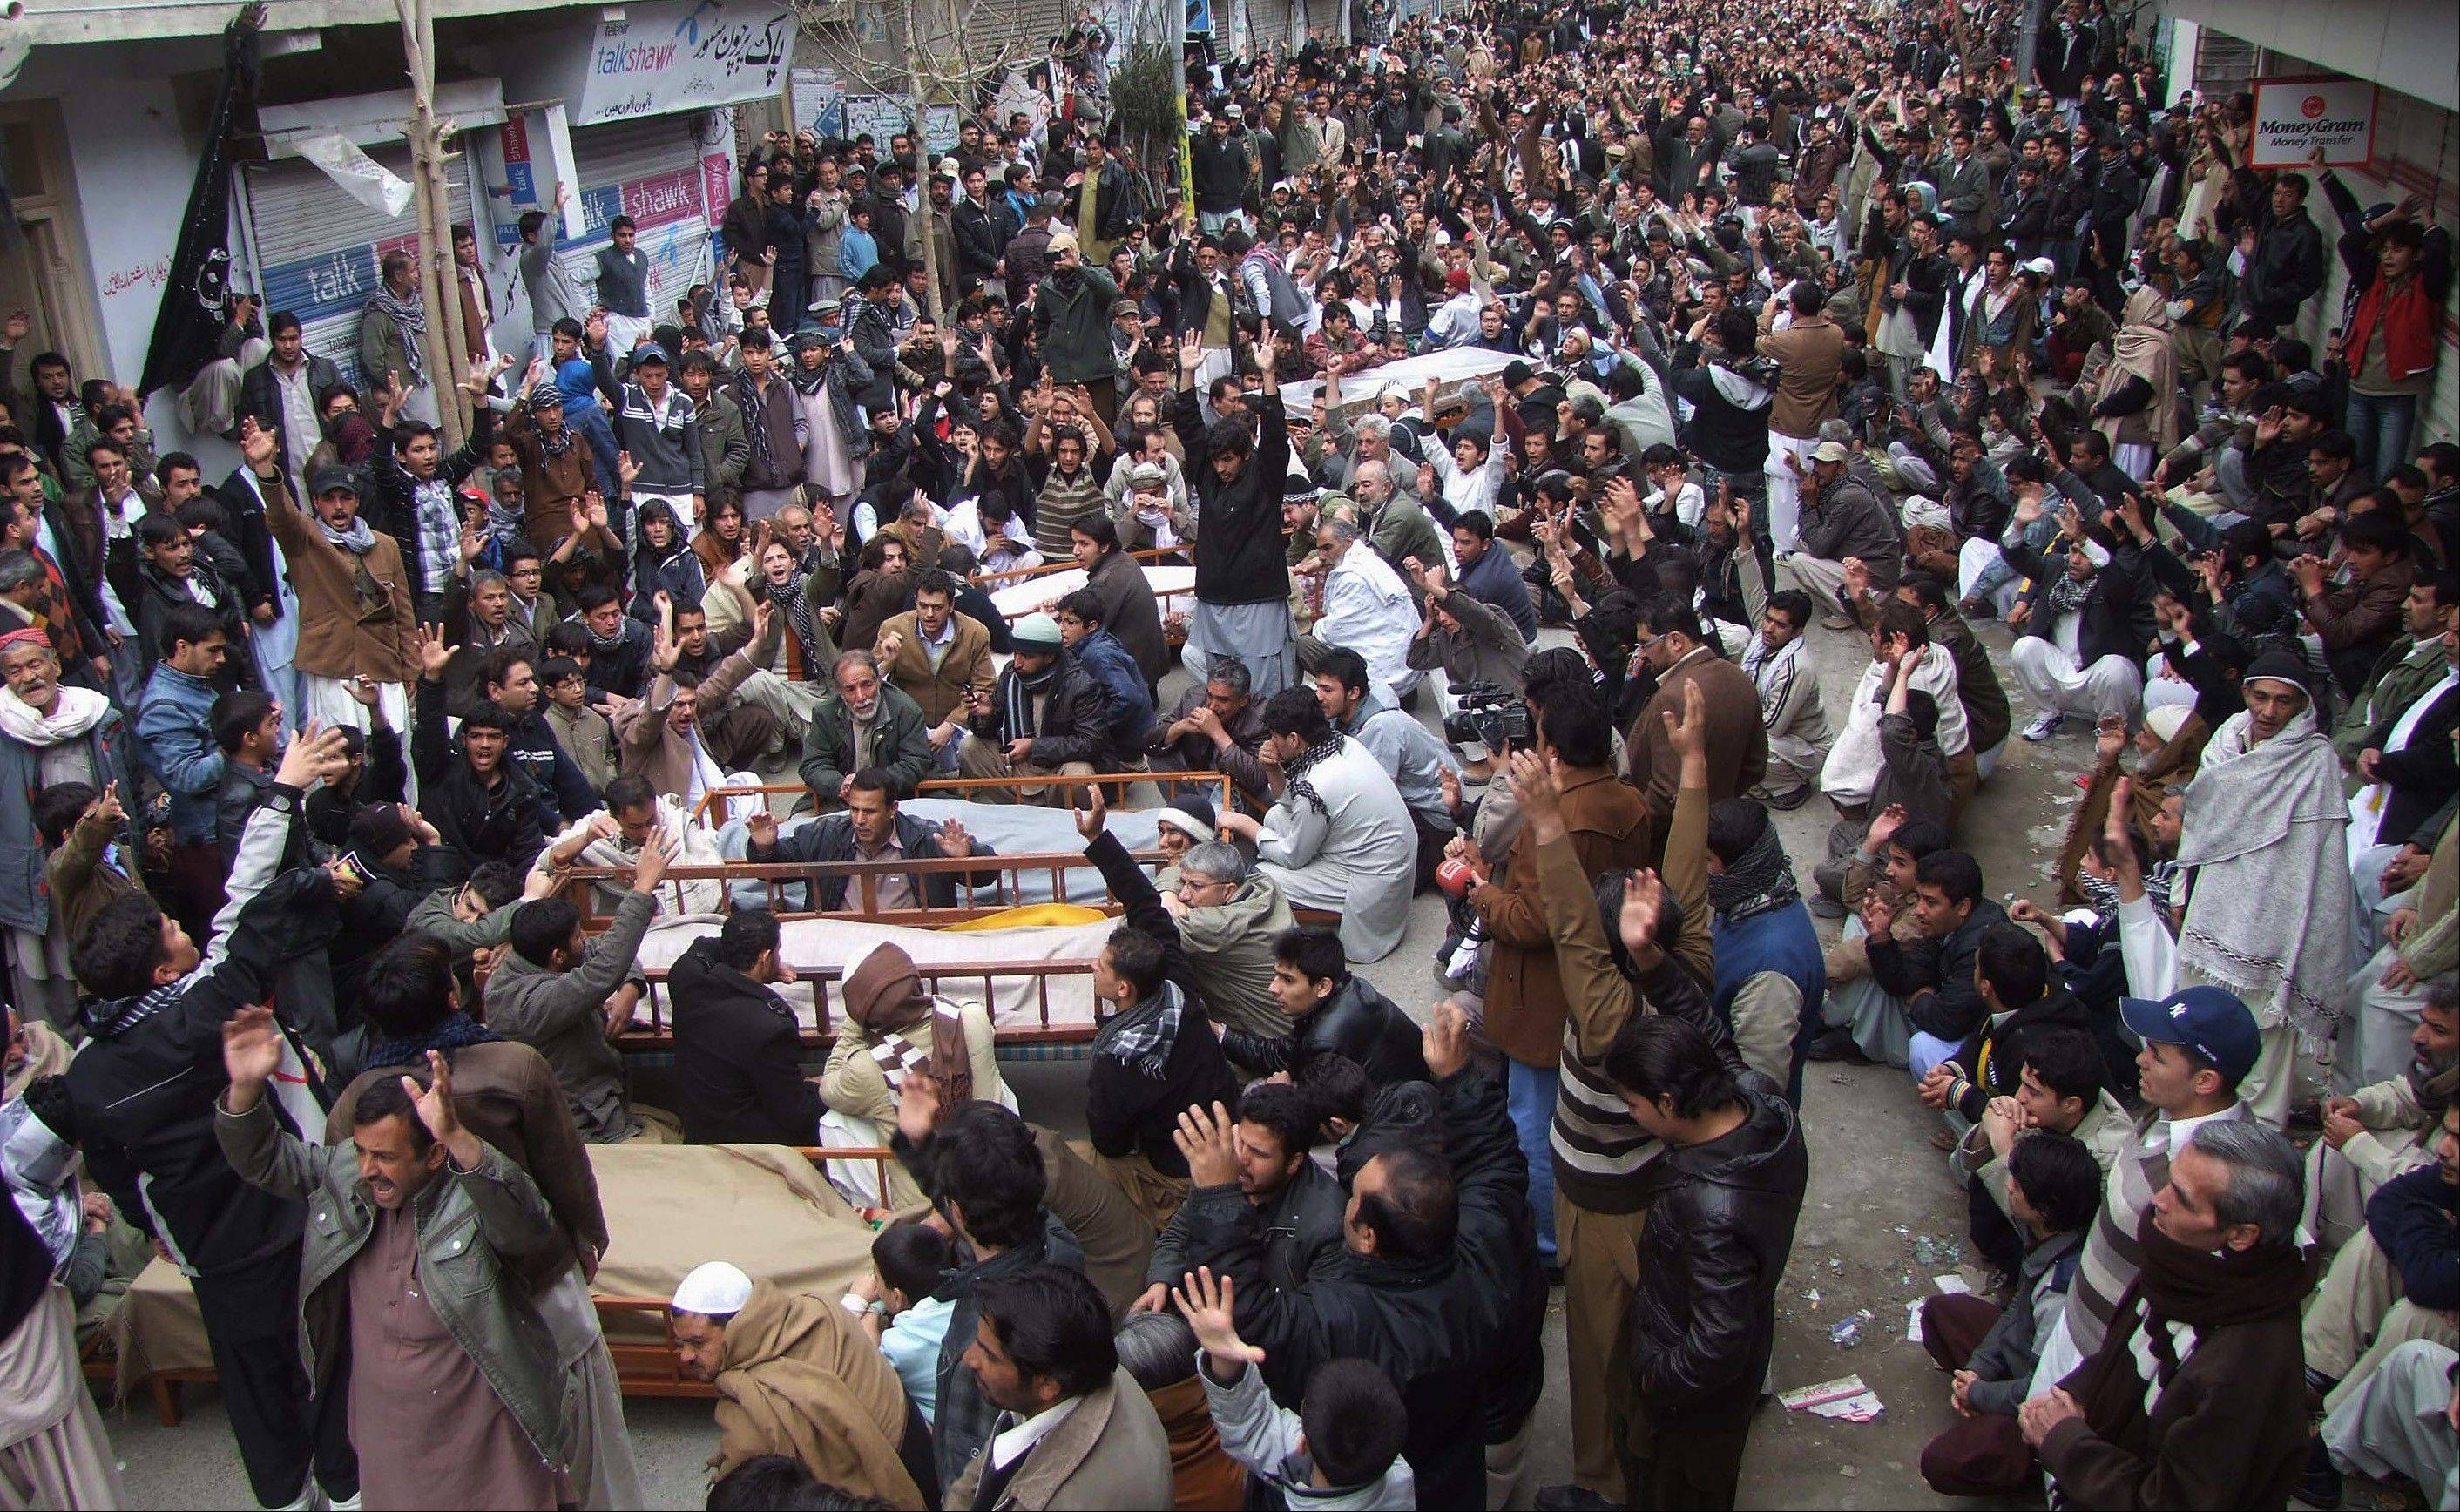 About 1,000 Pakistani Shiites blocked a main road Jan. 12 in Quetta, Pakistan, with dozens of coffin to demand better security from the government.